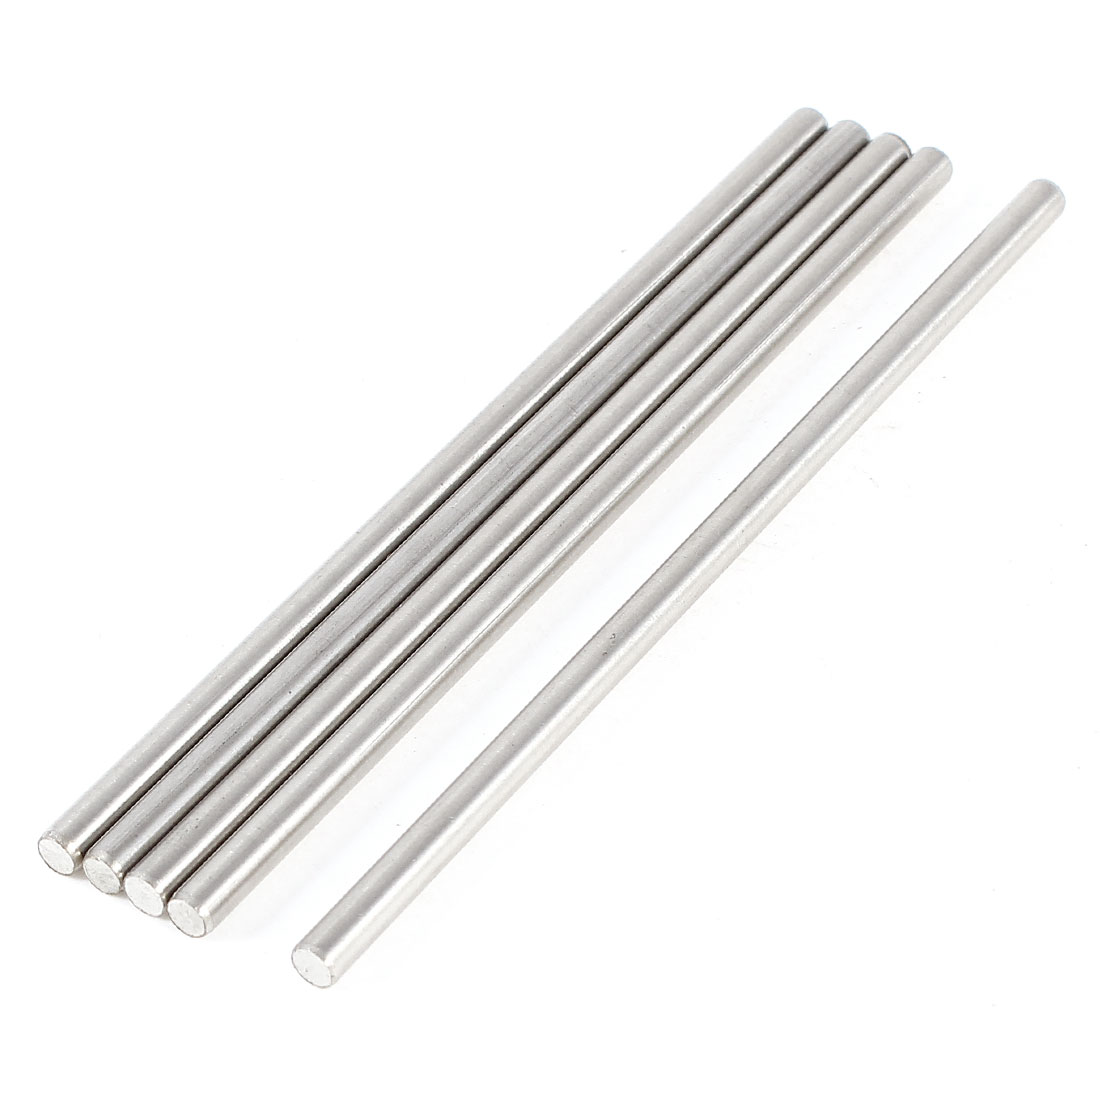 5 Pcs Car Helicopter Model Toy DIY Stainless Steel Axles Rod Bars 3mm x 80mm